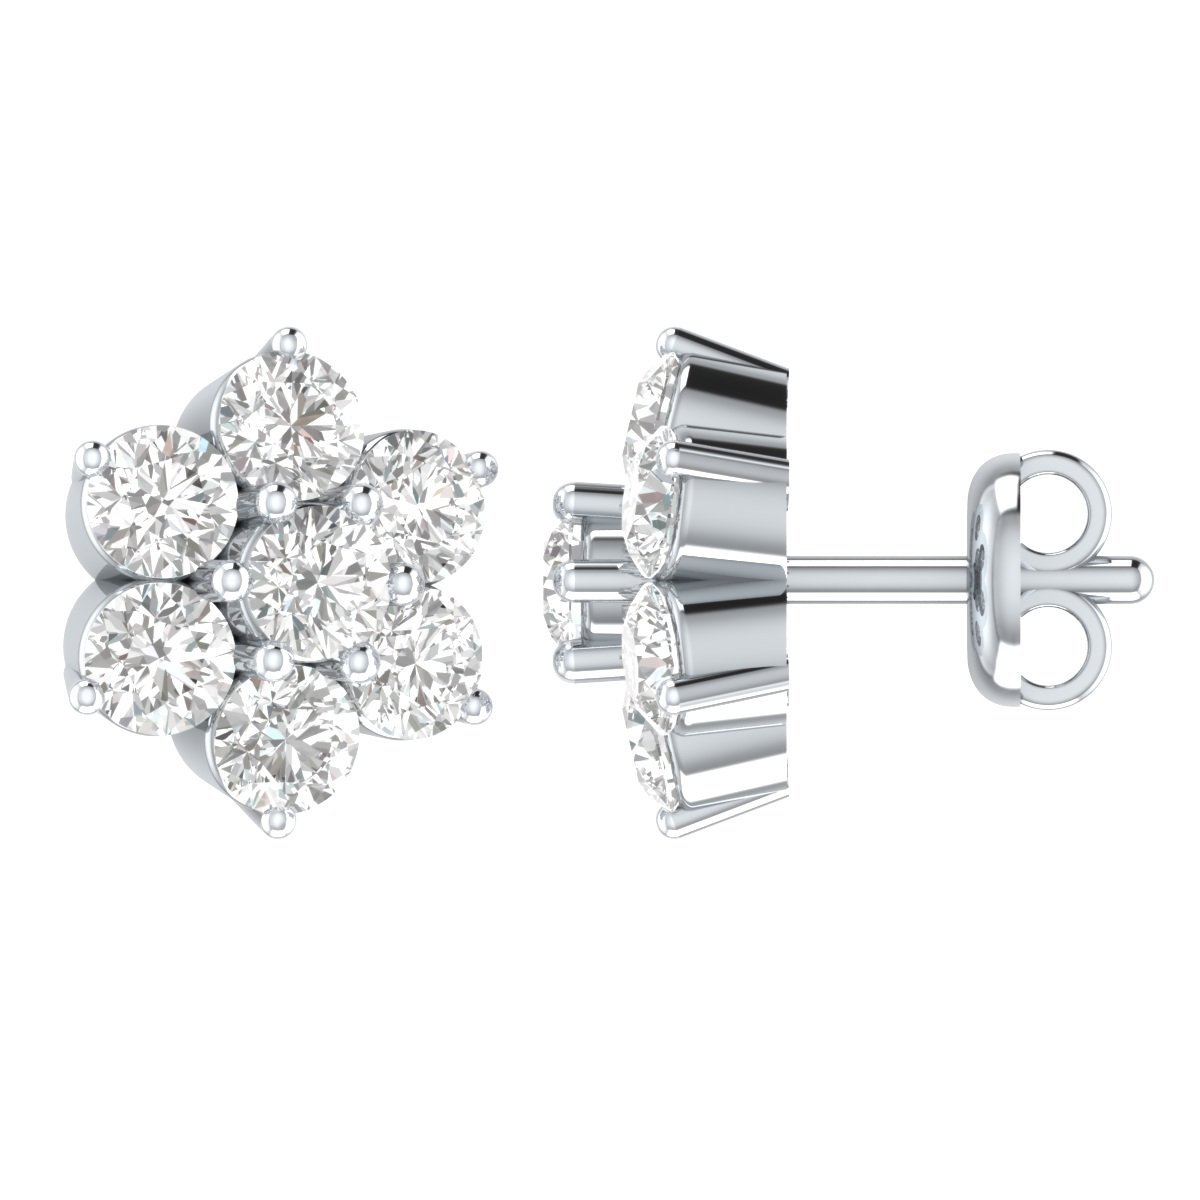 1//2 cttw, I-J Color, I2-I3 Clarity SDT15070/_DI/_WG-$P Demira Jewels IGI Certified Natural Diamond 10k White Gold Stud Earrings